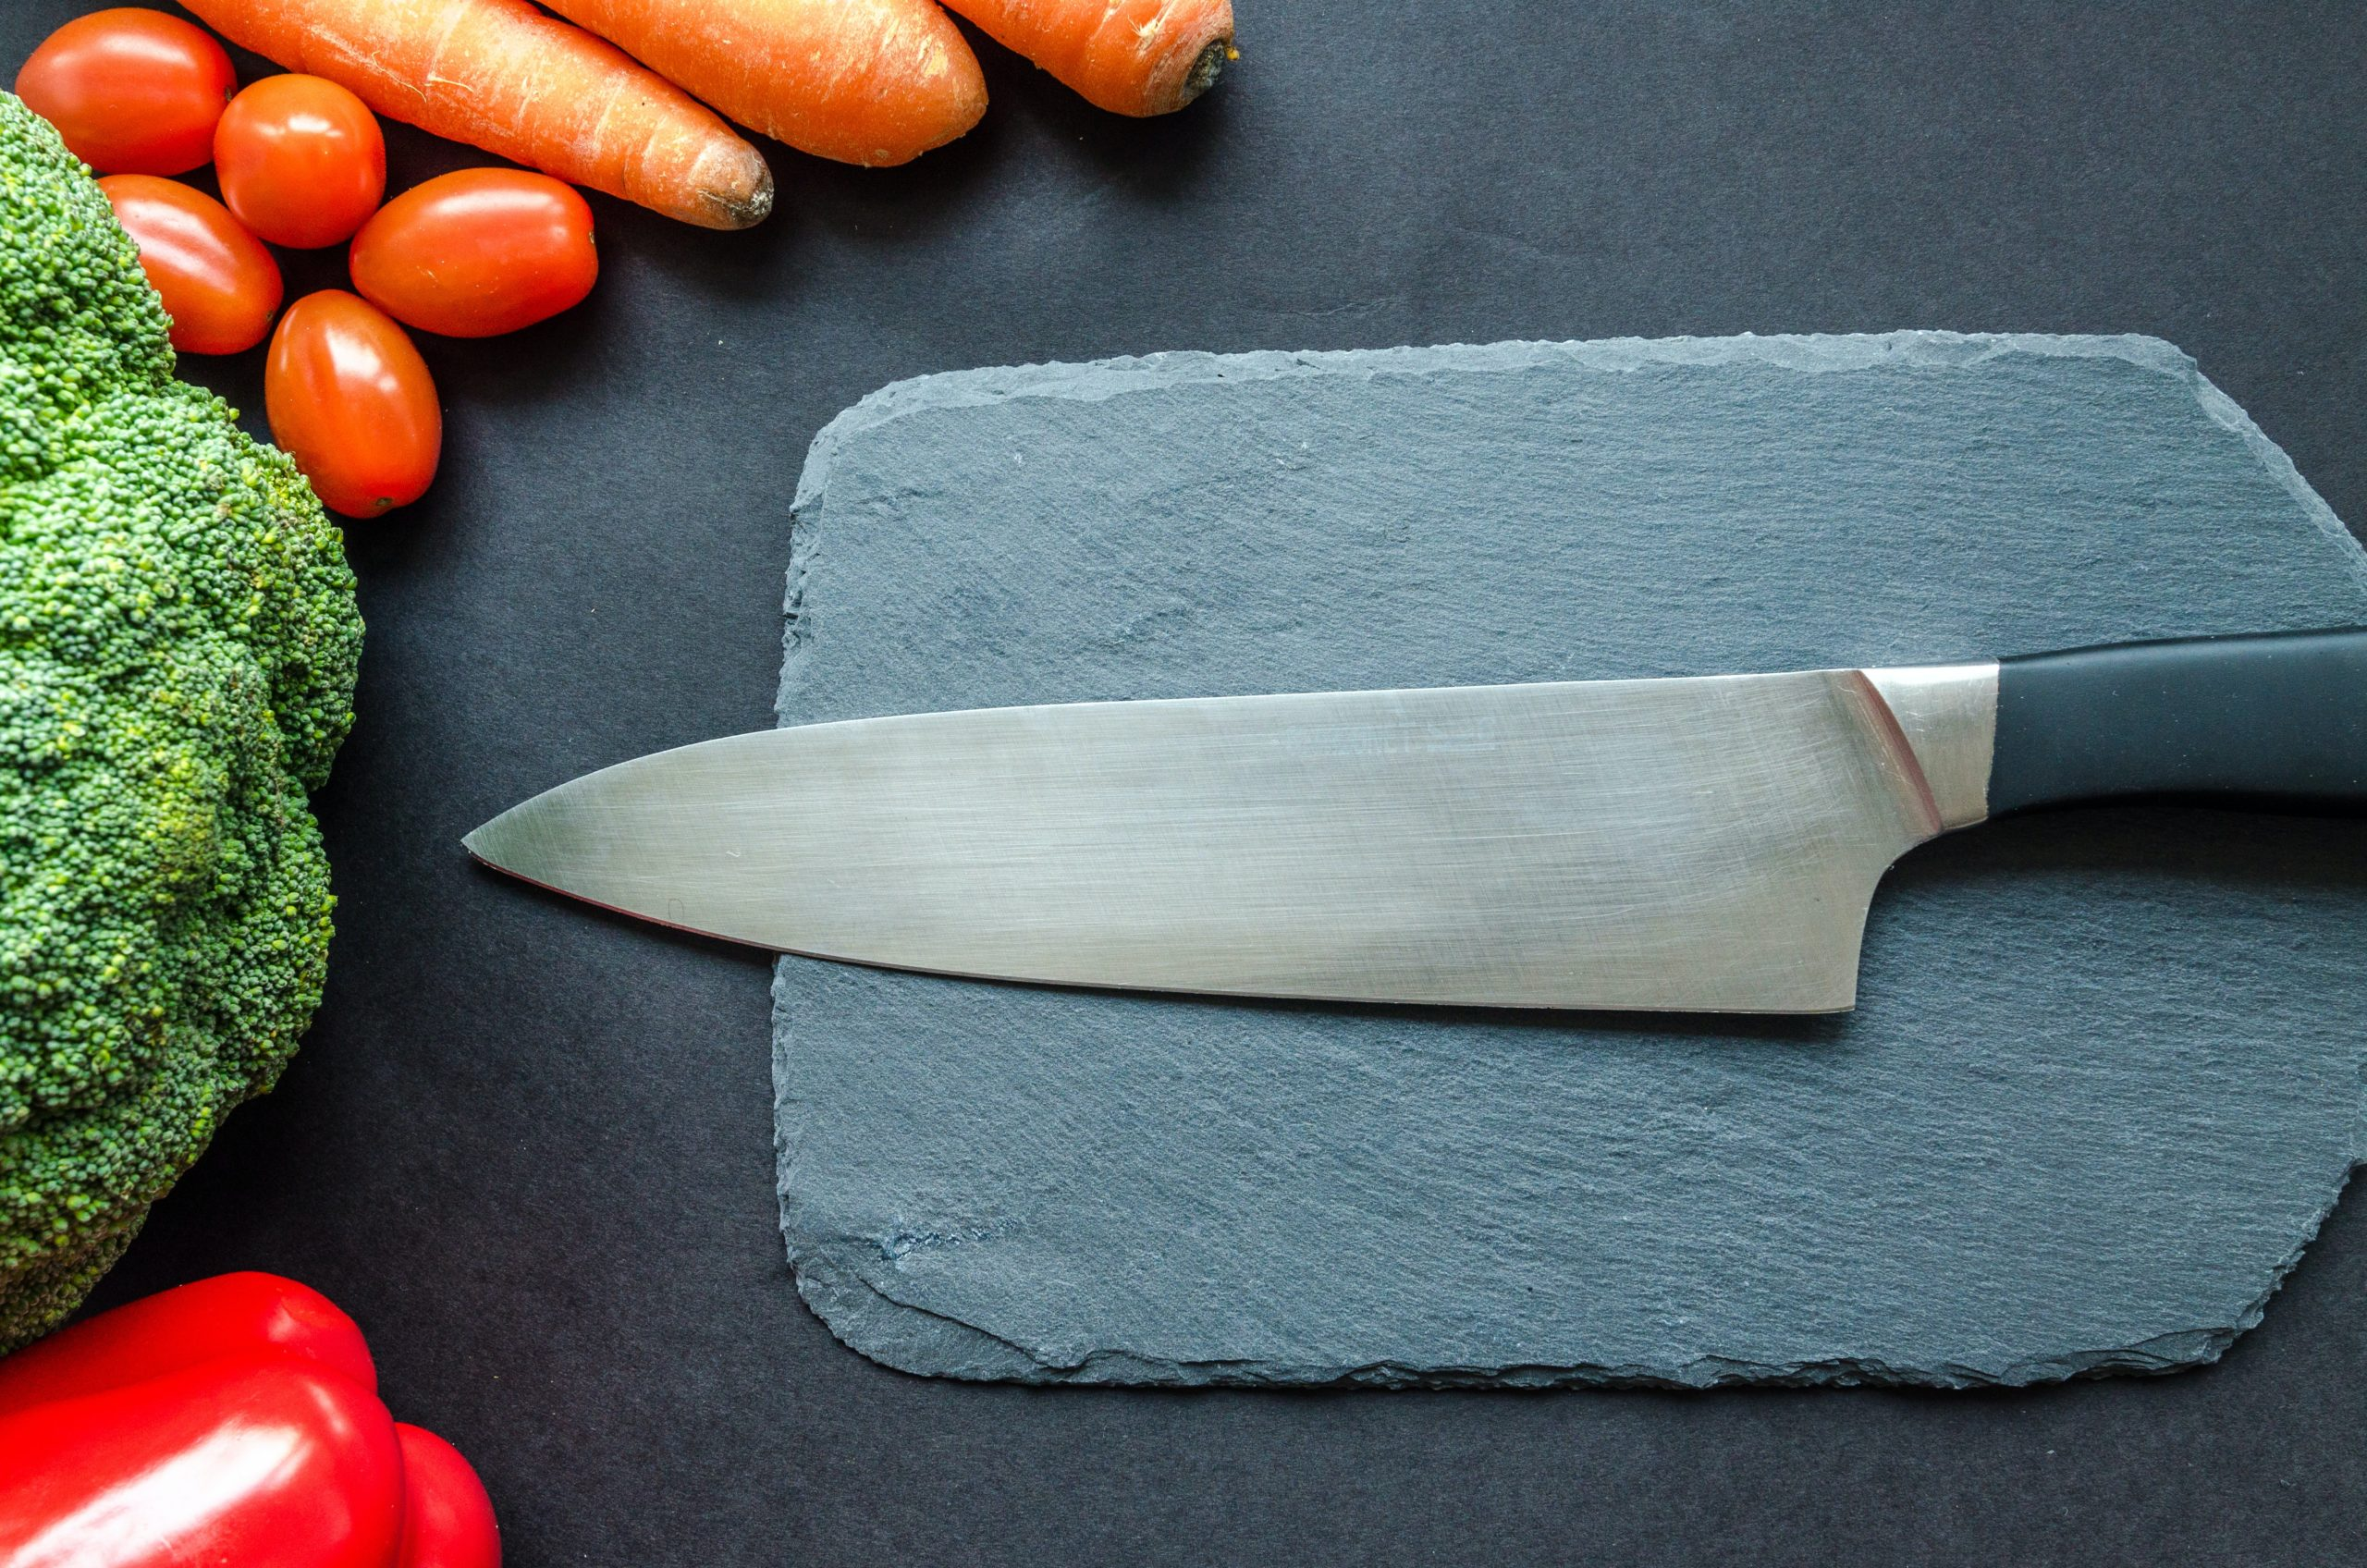 Best Chef Knife Set for the Money